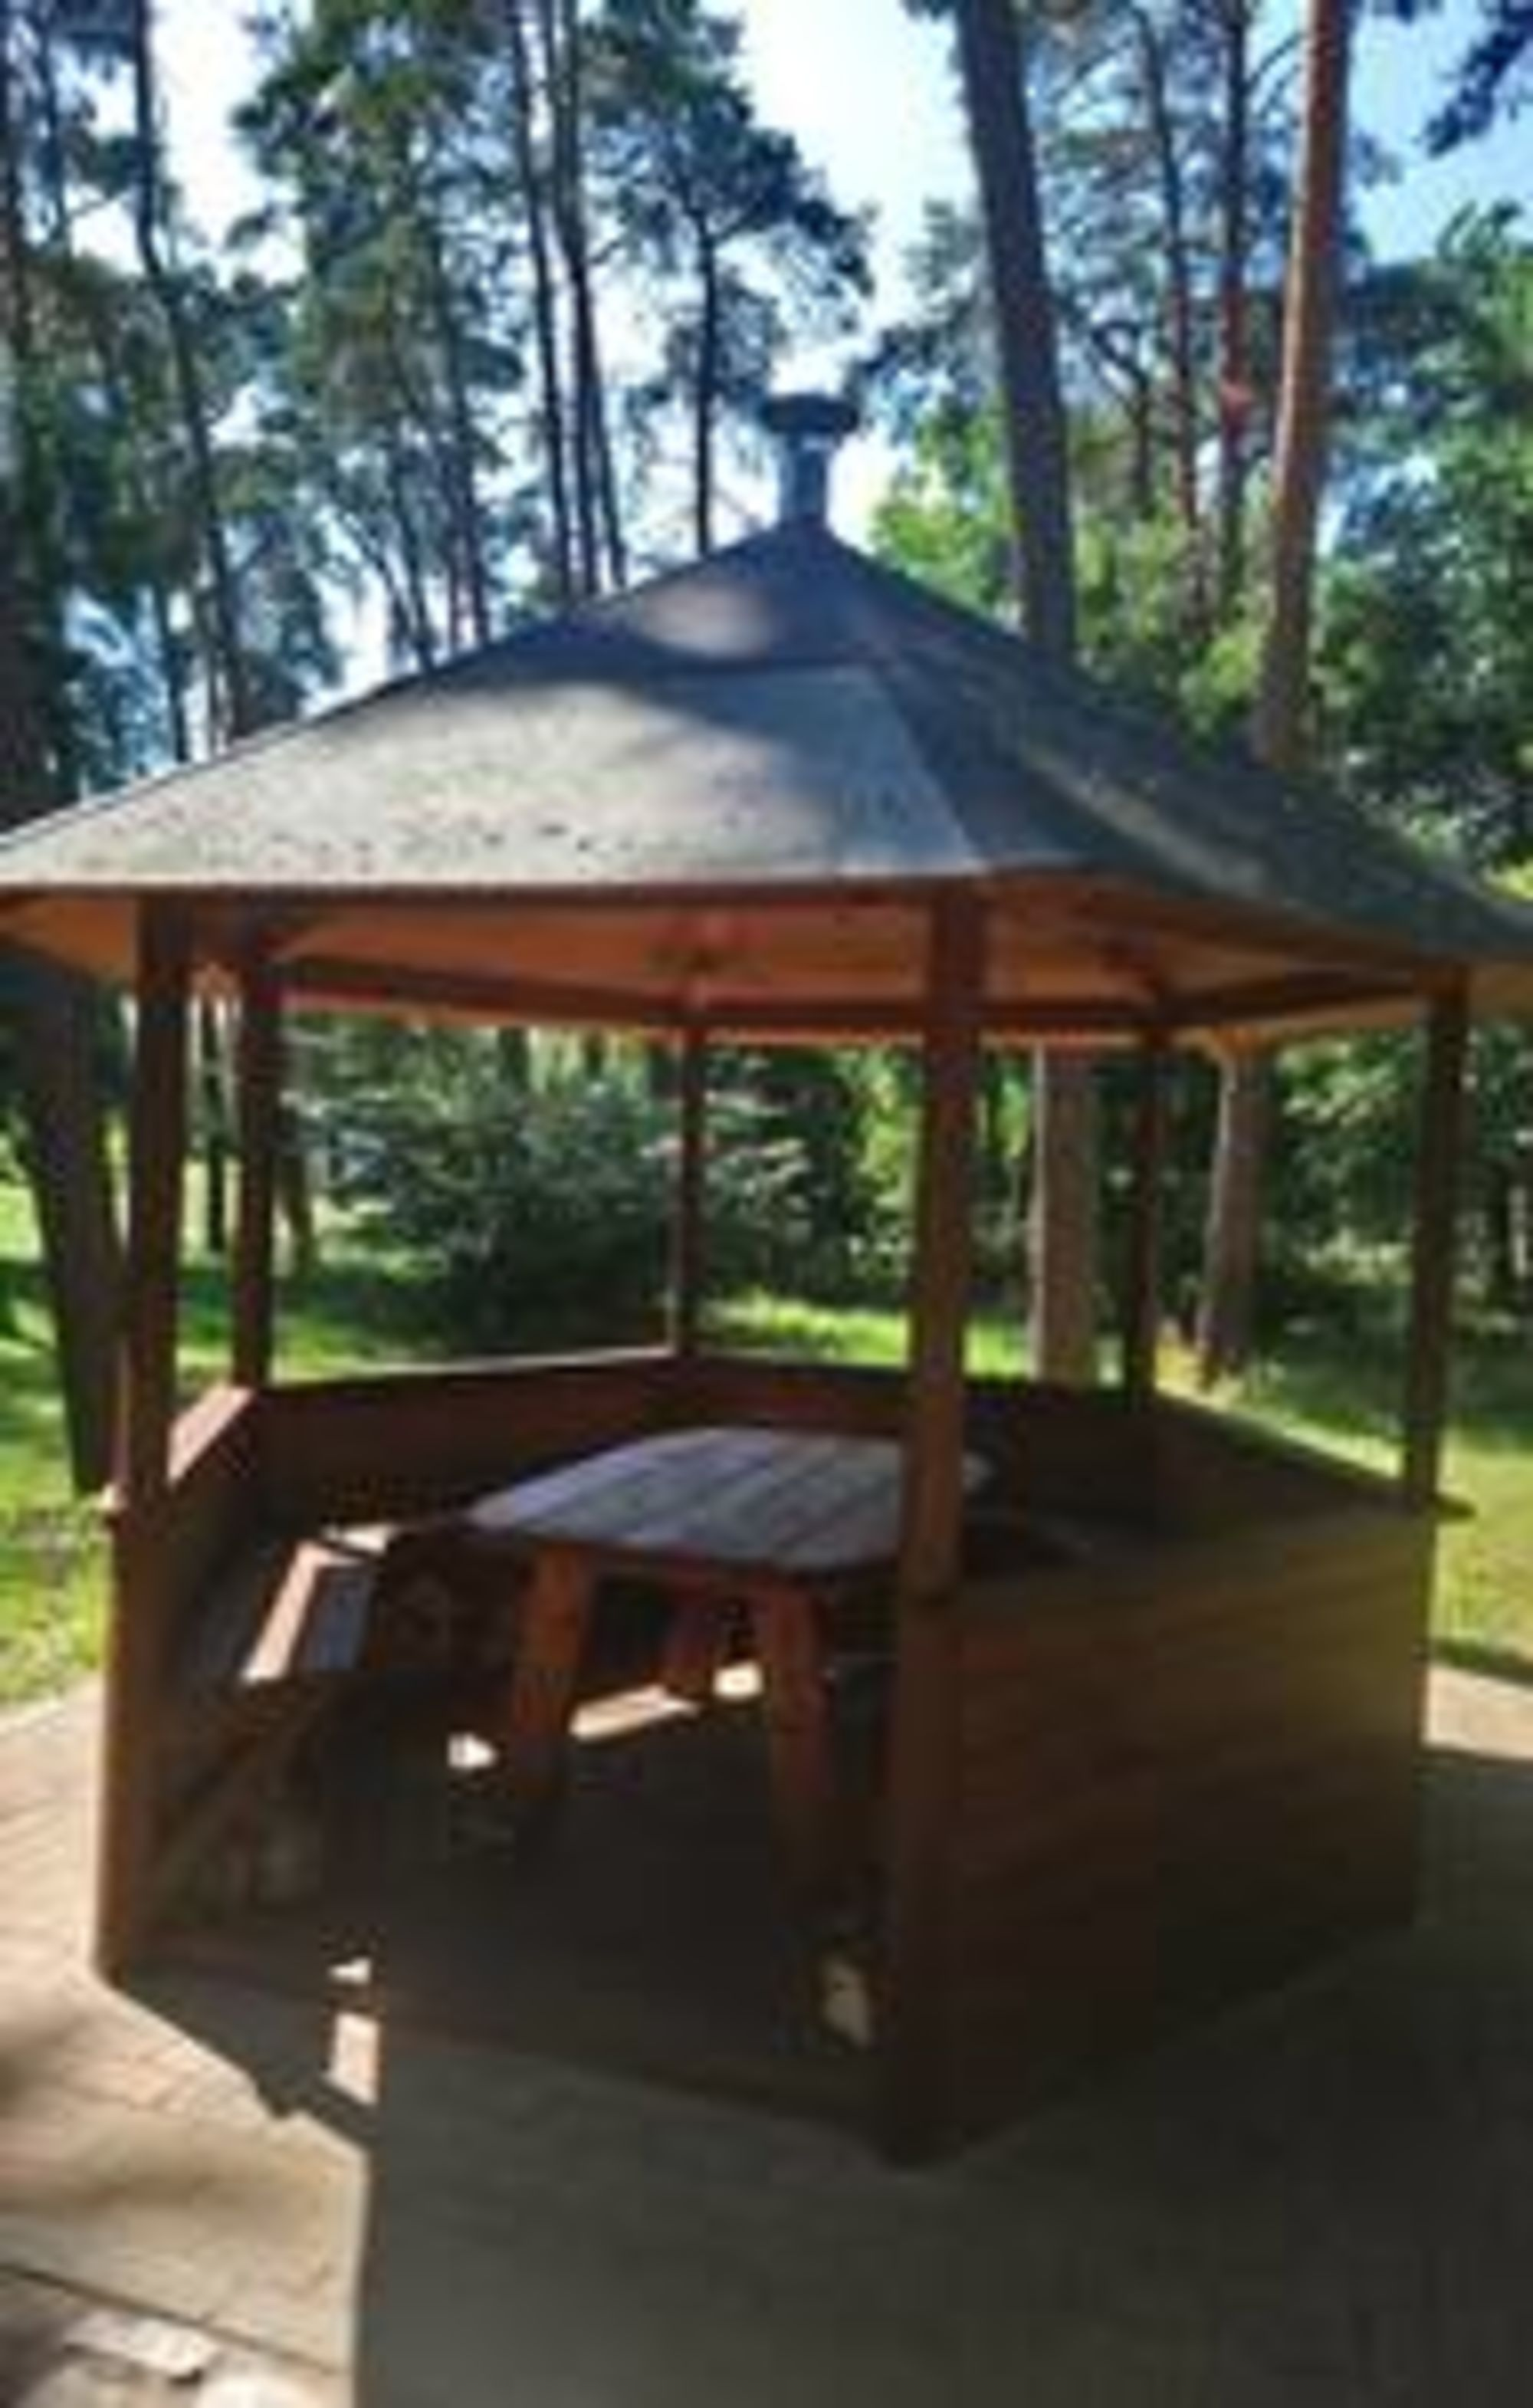 <p>Grillpavillion</p>